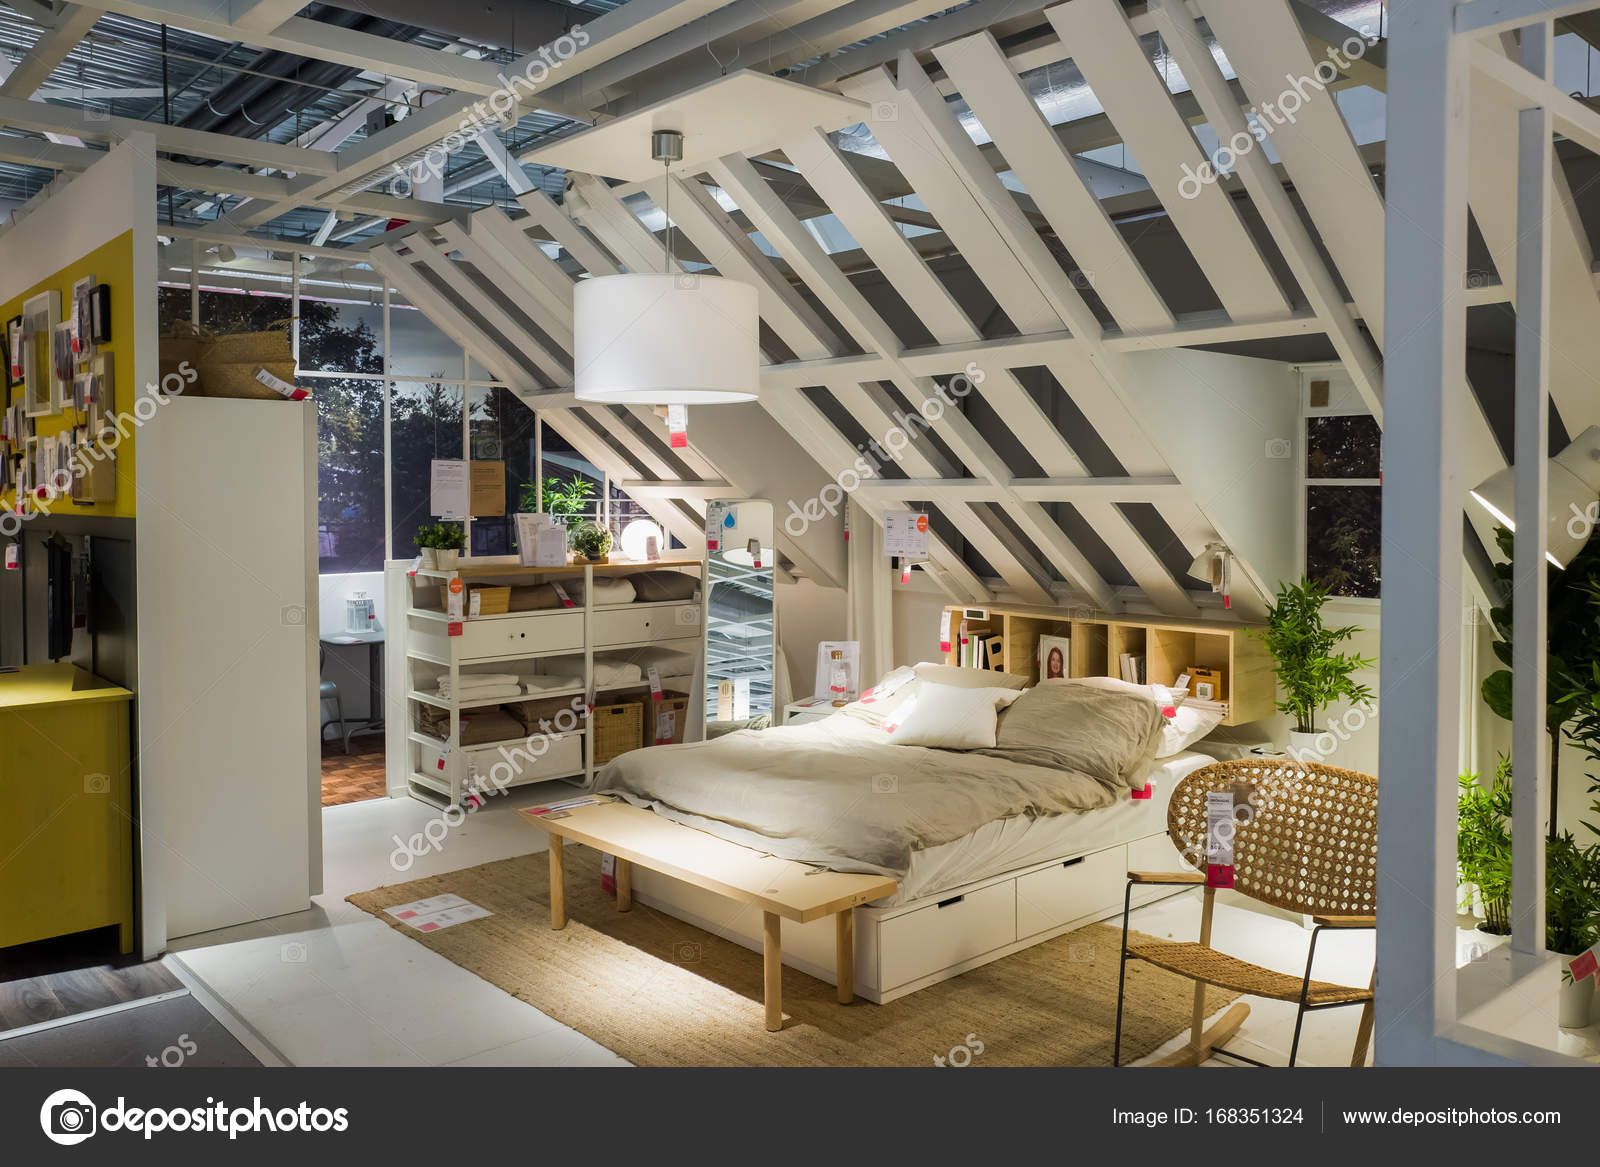 Interieur Ikea Intérieur Du Magasin Ikea à Delft Photo éditoriale Dutchlight